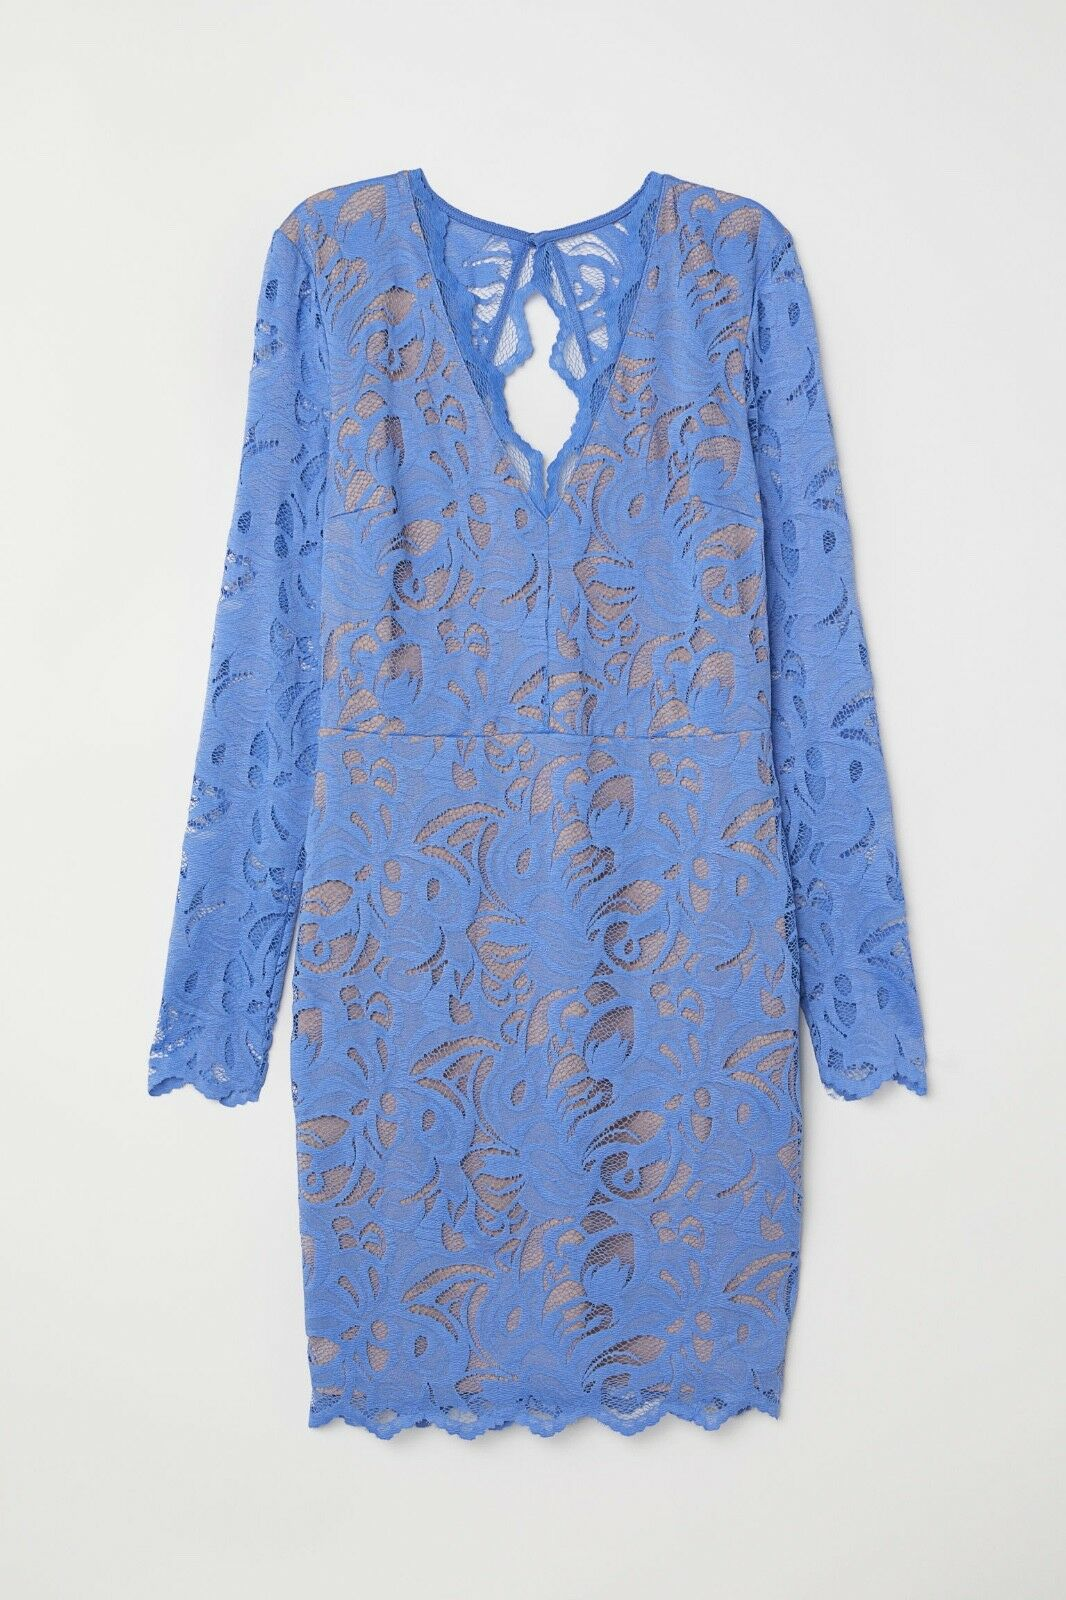 NWT - Elegant and Beautiful PERIWINKLE-bluee H&M Fitted LACE Dress, Size 12